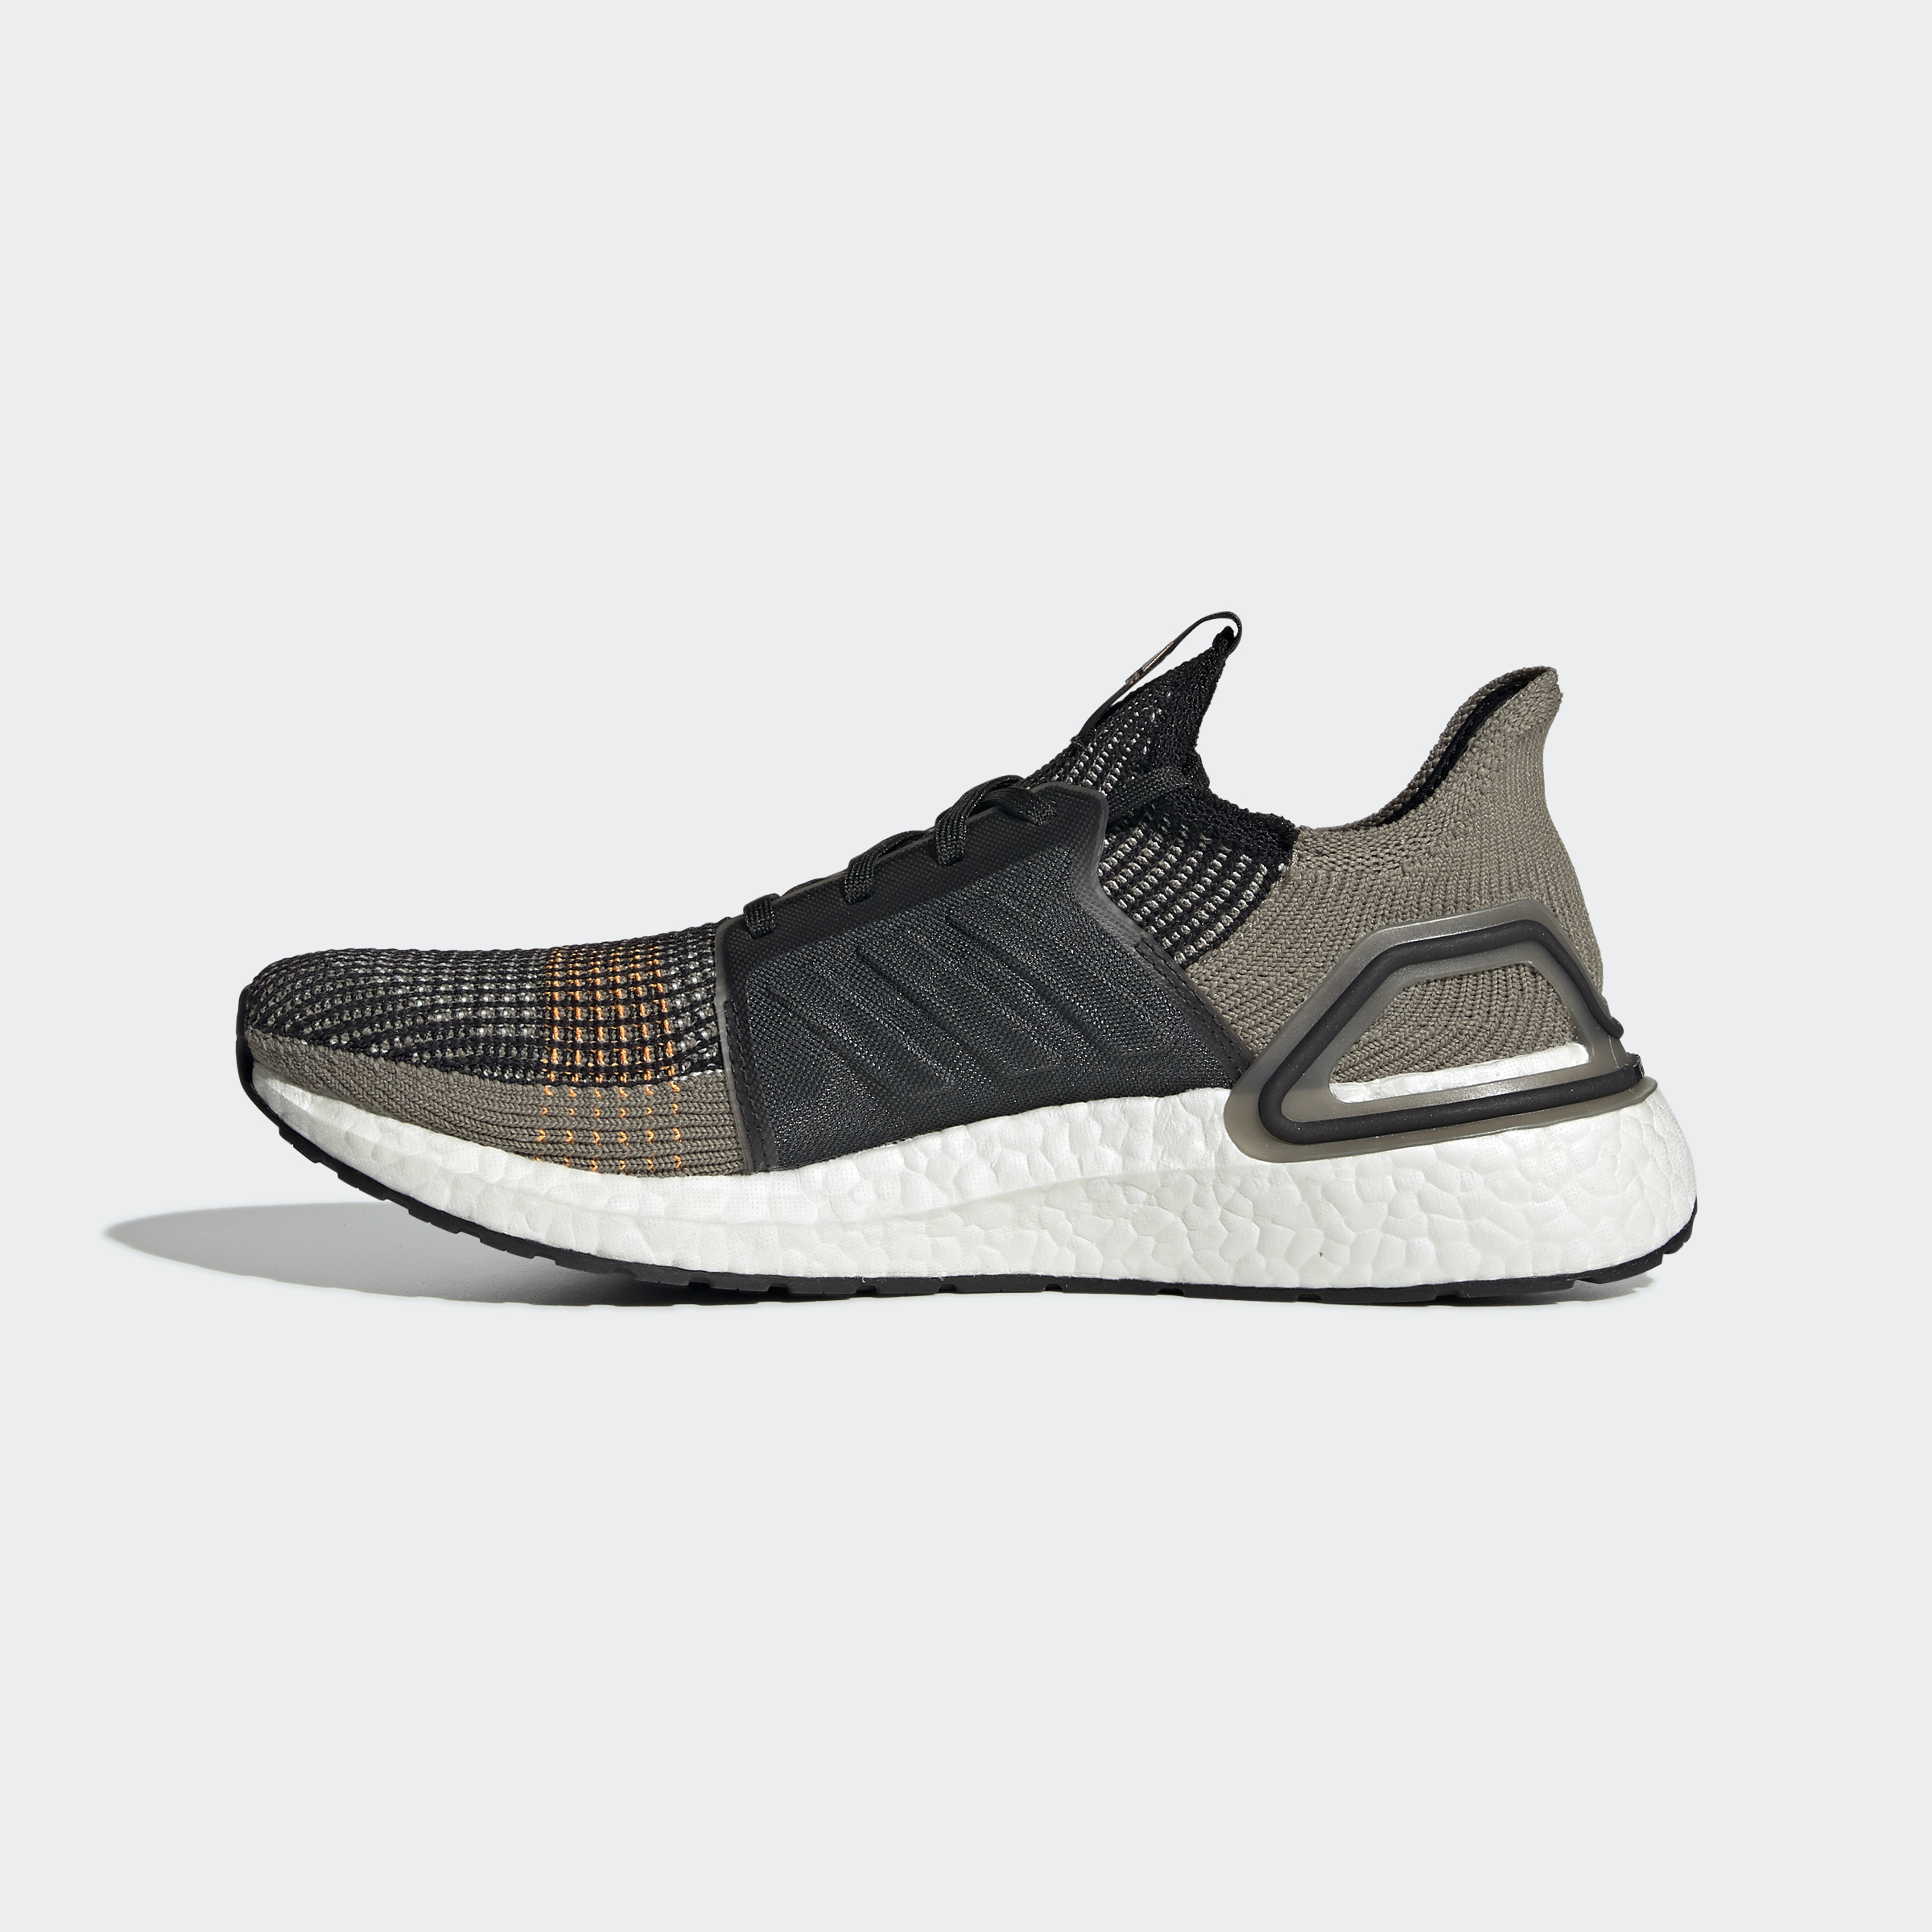 adidas-Ultraboost-19-Shoes-Athletic-amp-Sneakers thumbnail 90